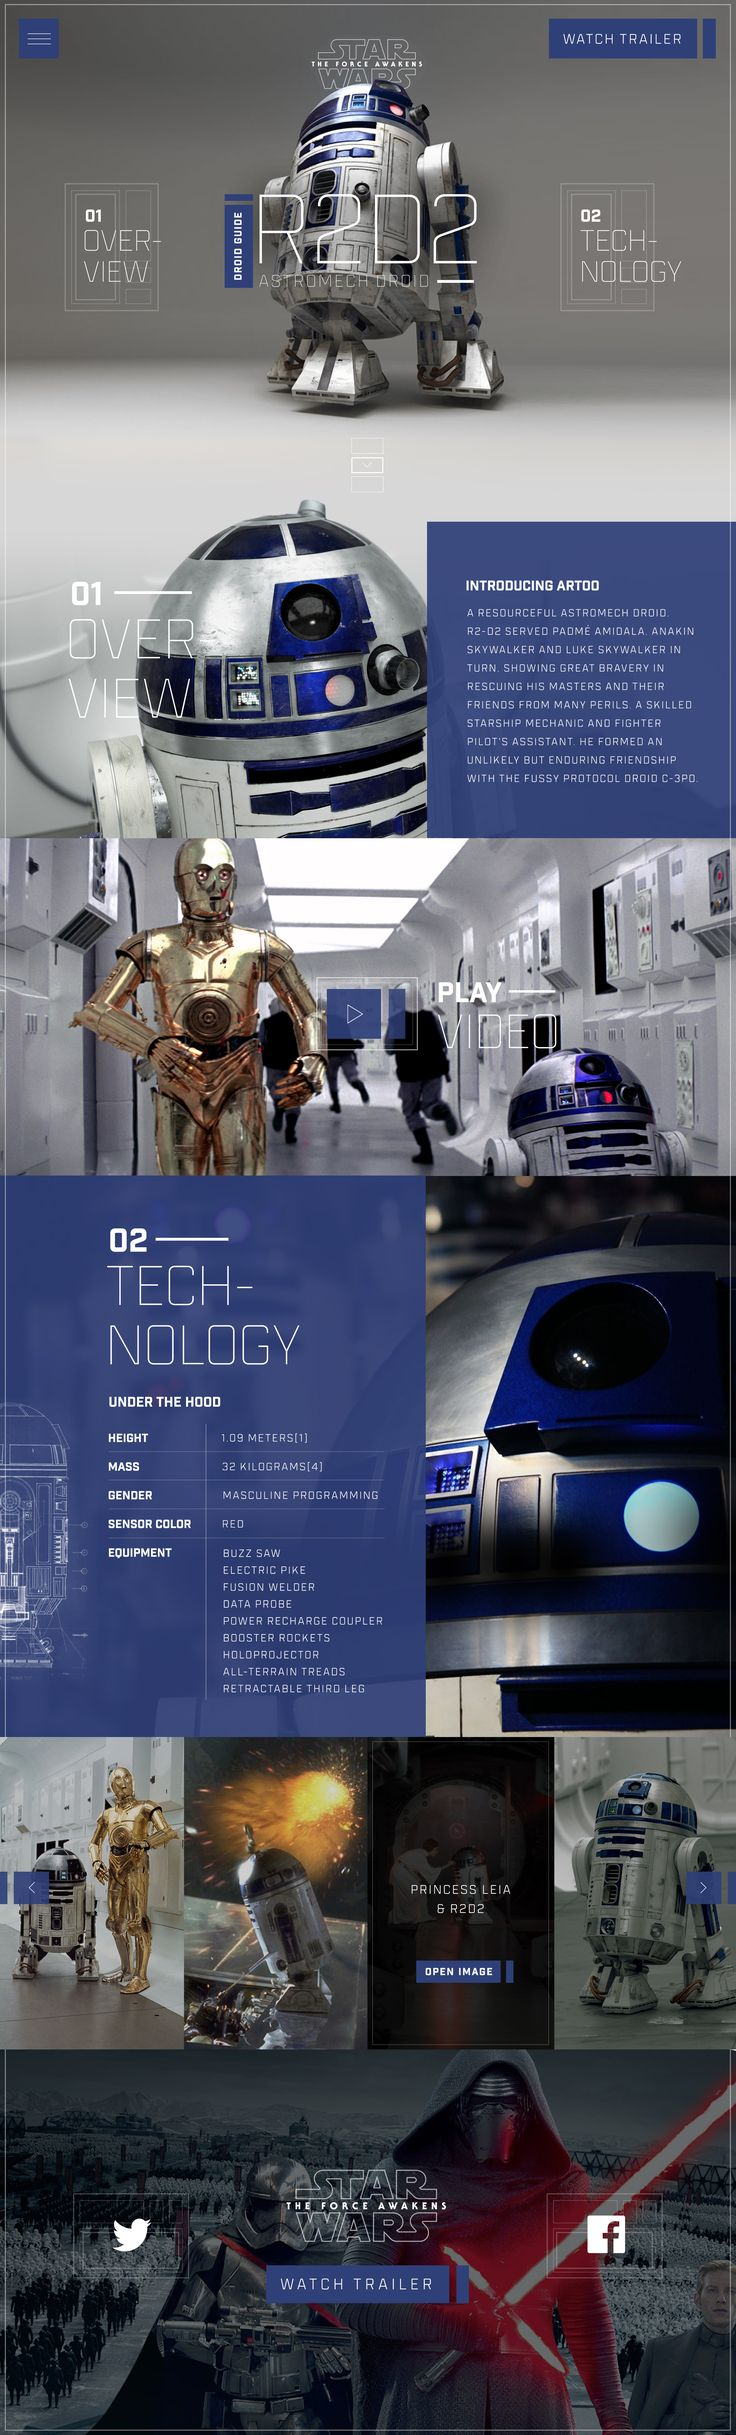 Star Wars R2D2 Droid Guide by Nathan Riley of Green Chameleon.